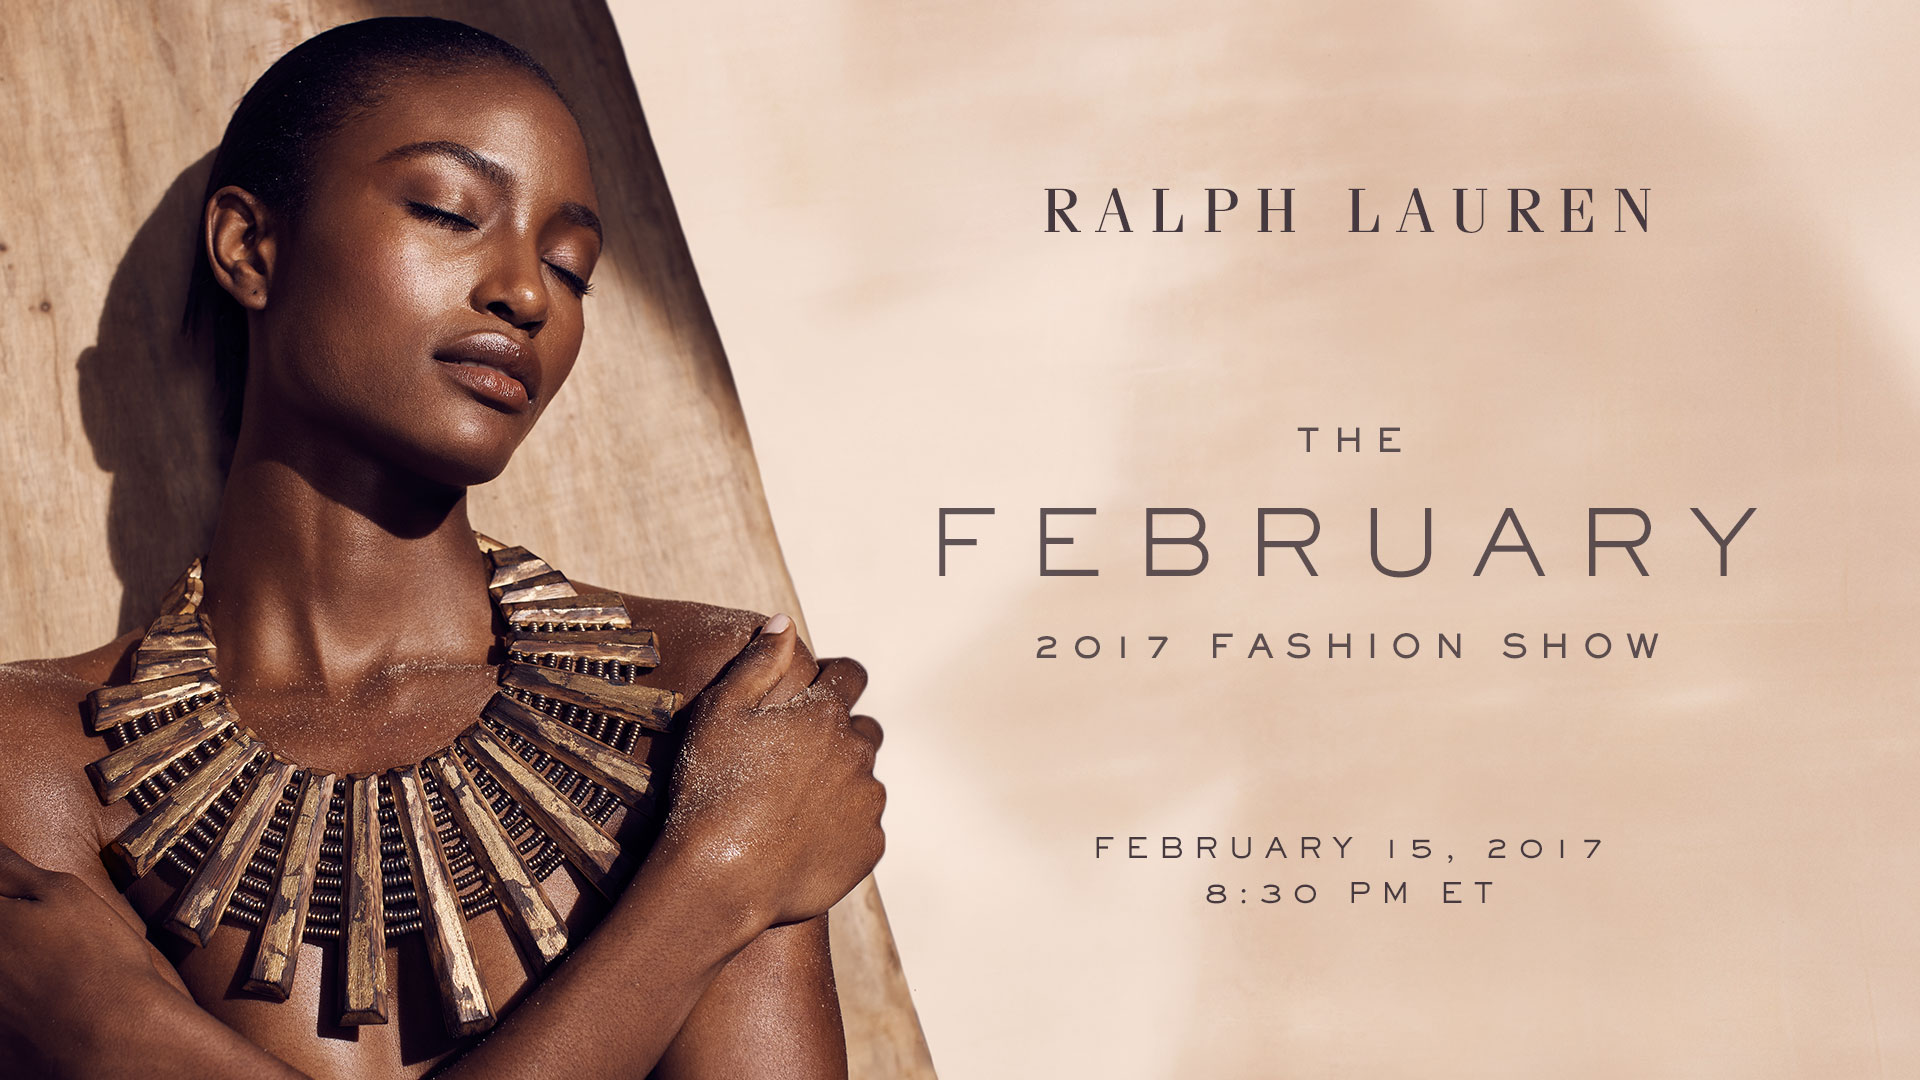 Ralph Lauren The February 2017 Fashion Show Live Streaming New York 15th January 8.30 Pm Est